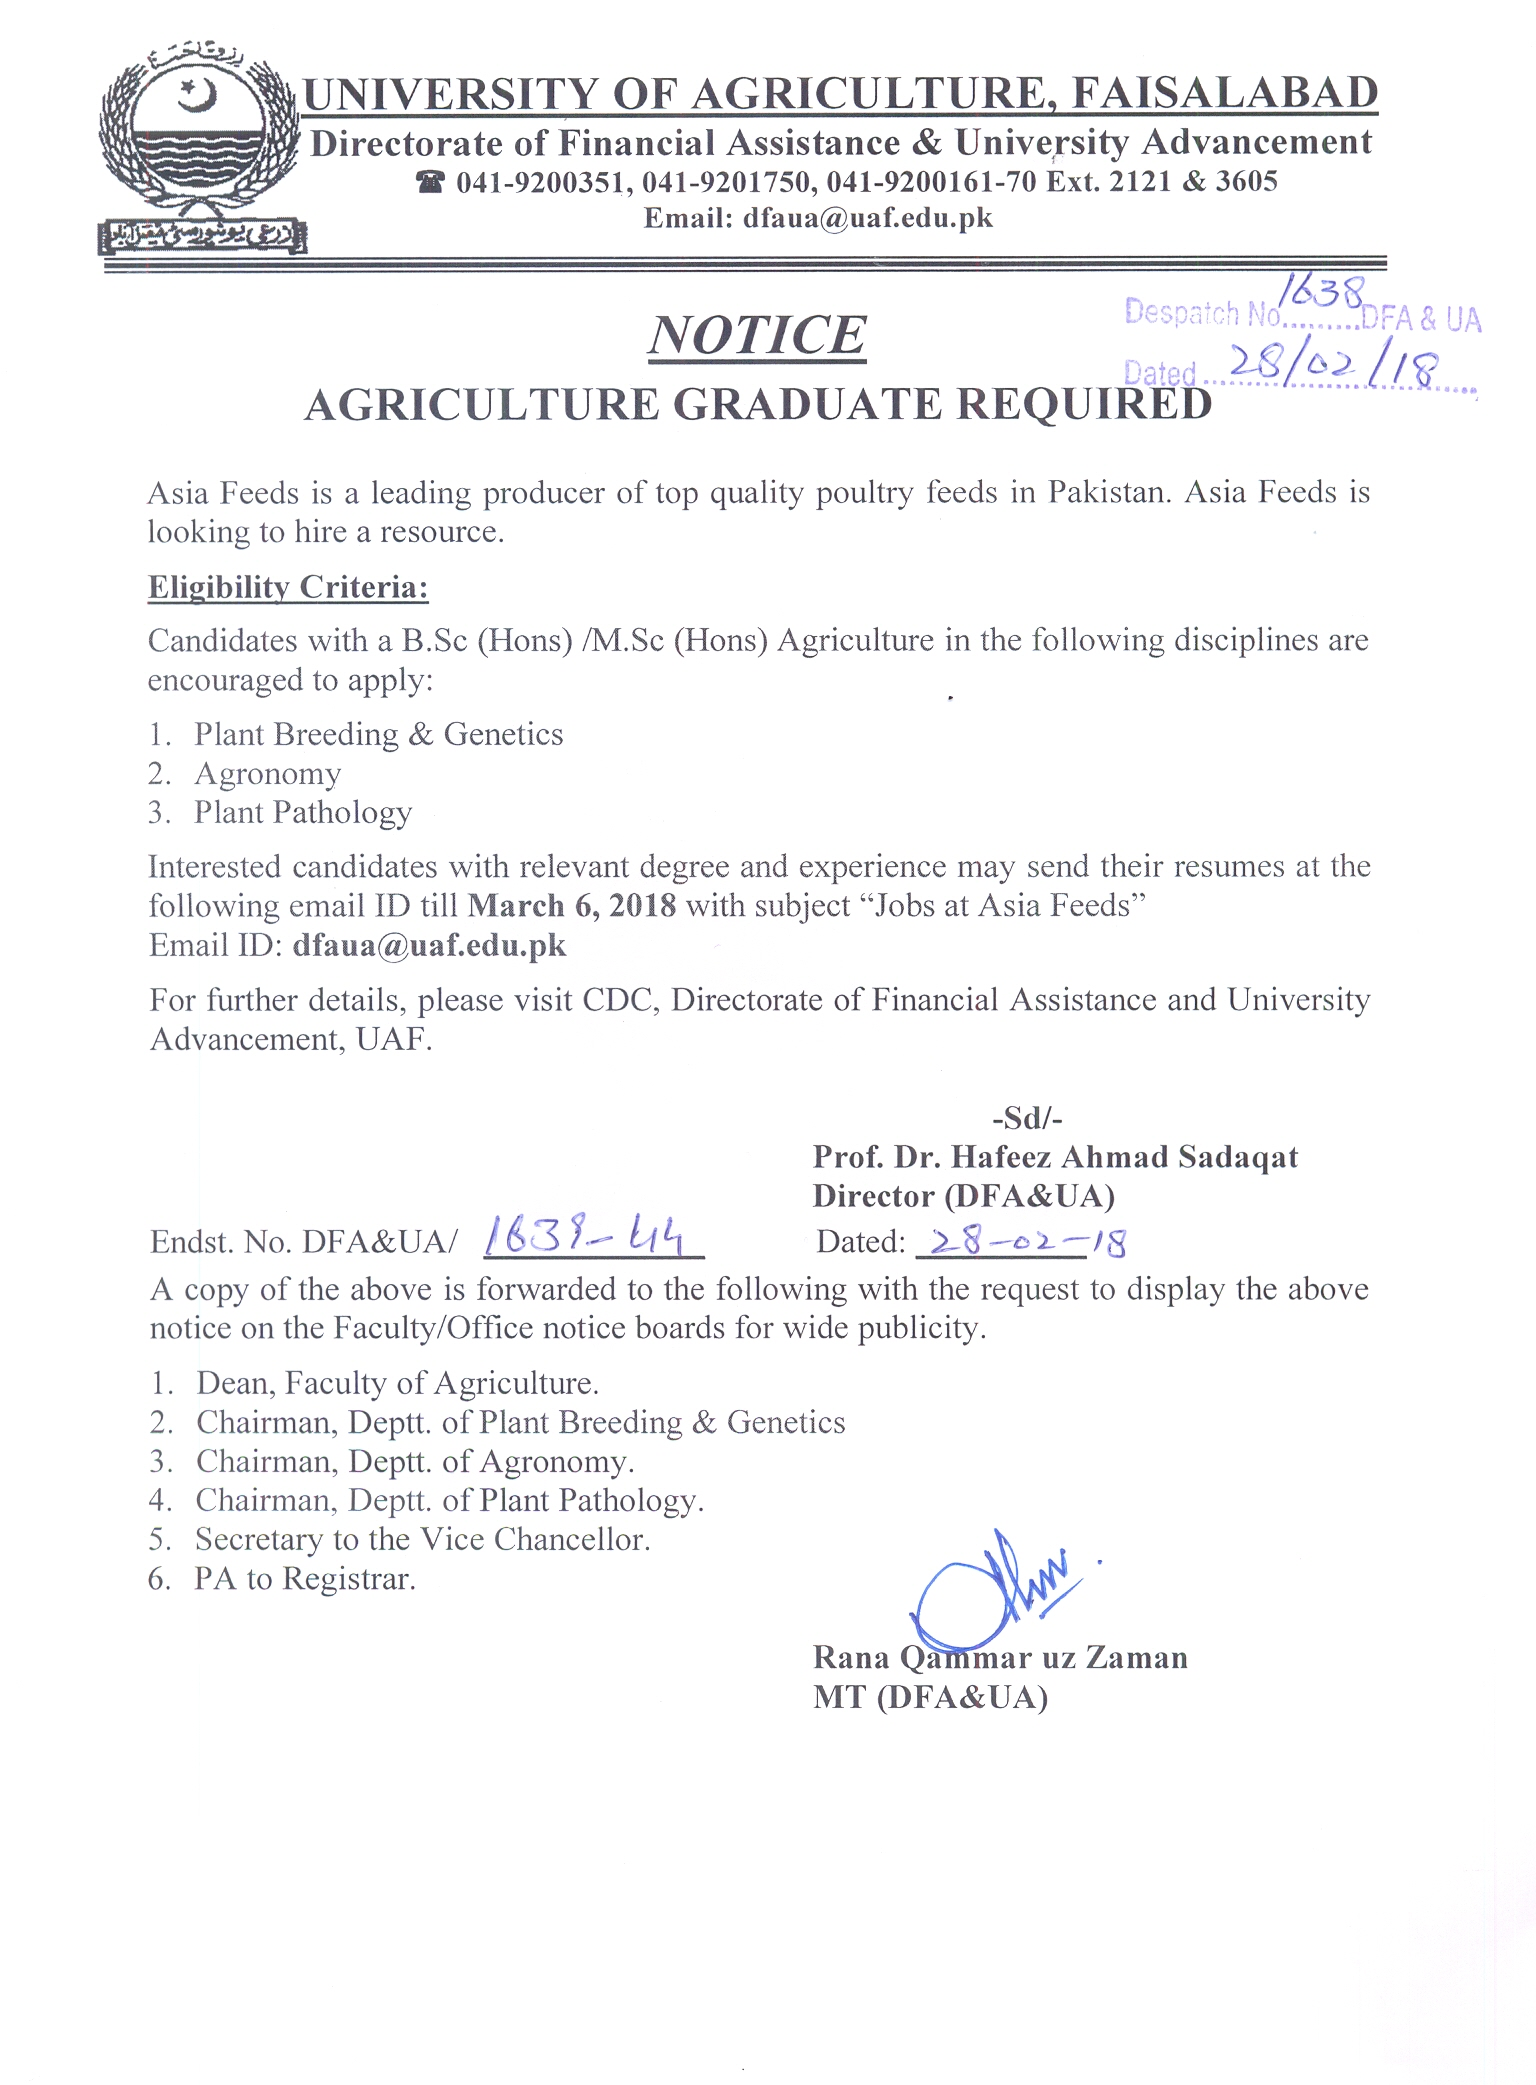 University of Agriculture, Faisalabad, Pakistan -> Job Opportunities